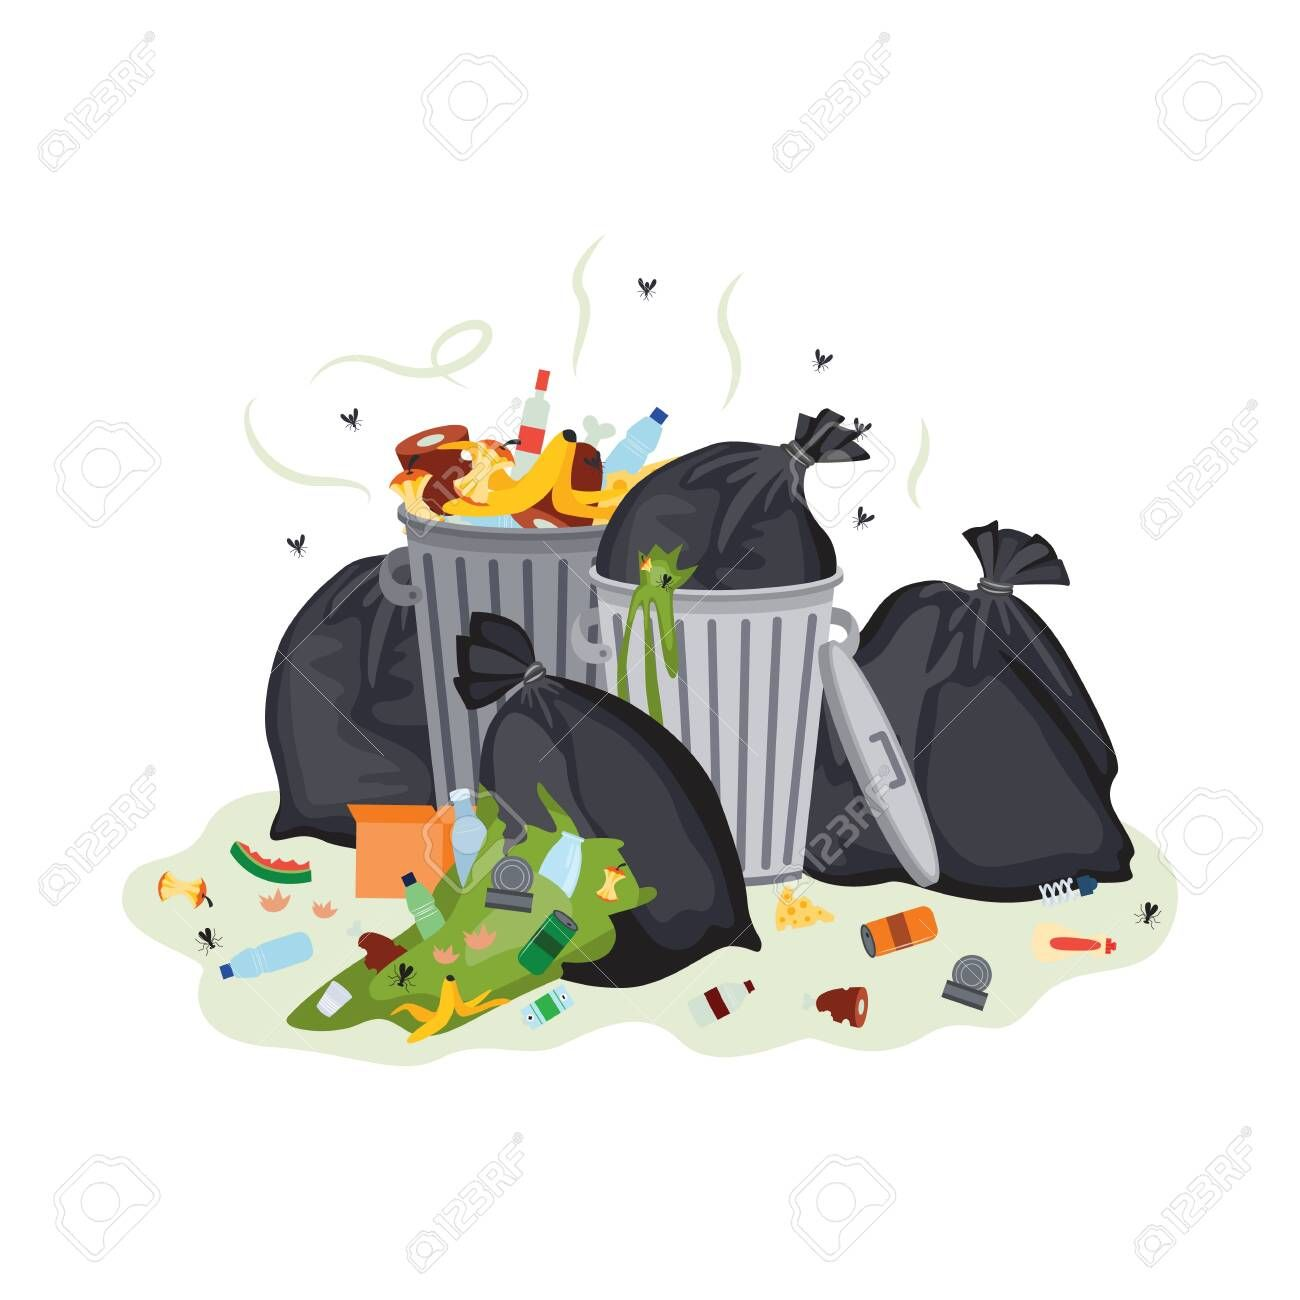 Garbage Pile Black Trash Bags And Metal Bins Full Of Disgusting Green Smelly Food Waste Plastic Bottles And Cans Cartoons Vector Simple Graphic Plastic Bag